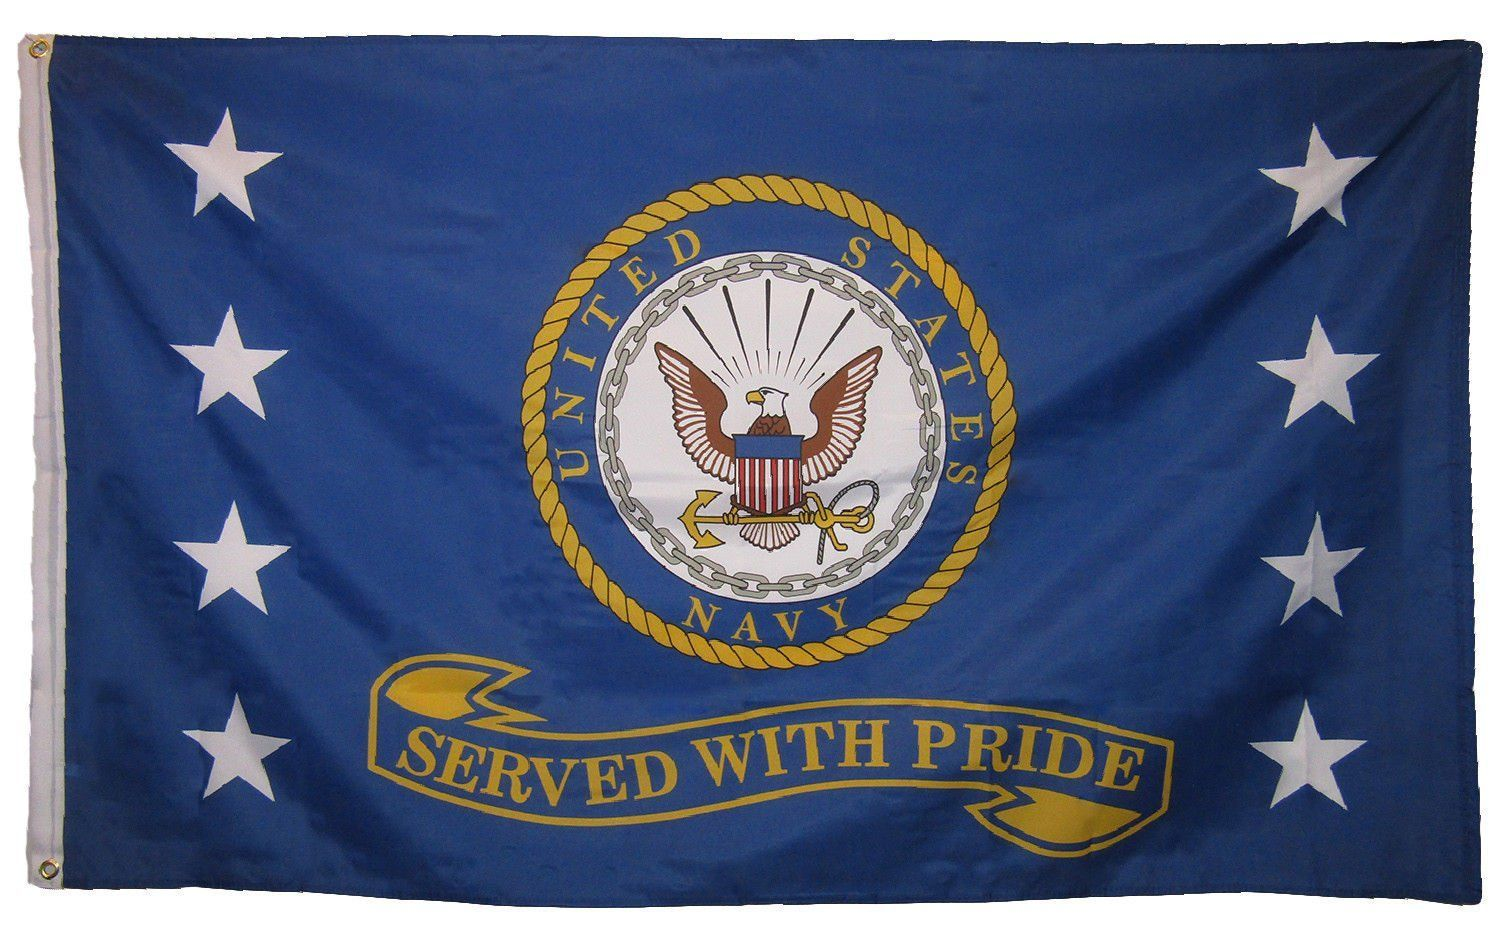 Served with Pride Navy Flag